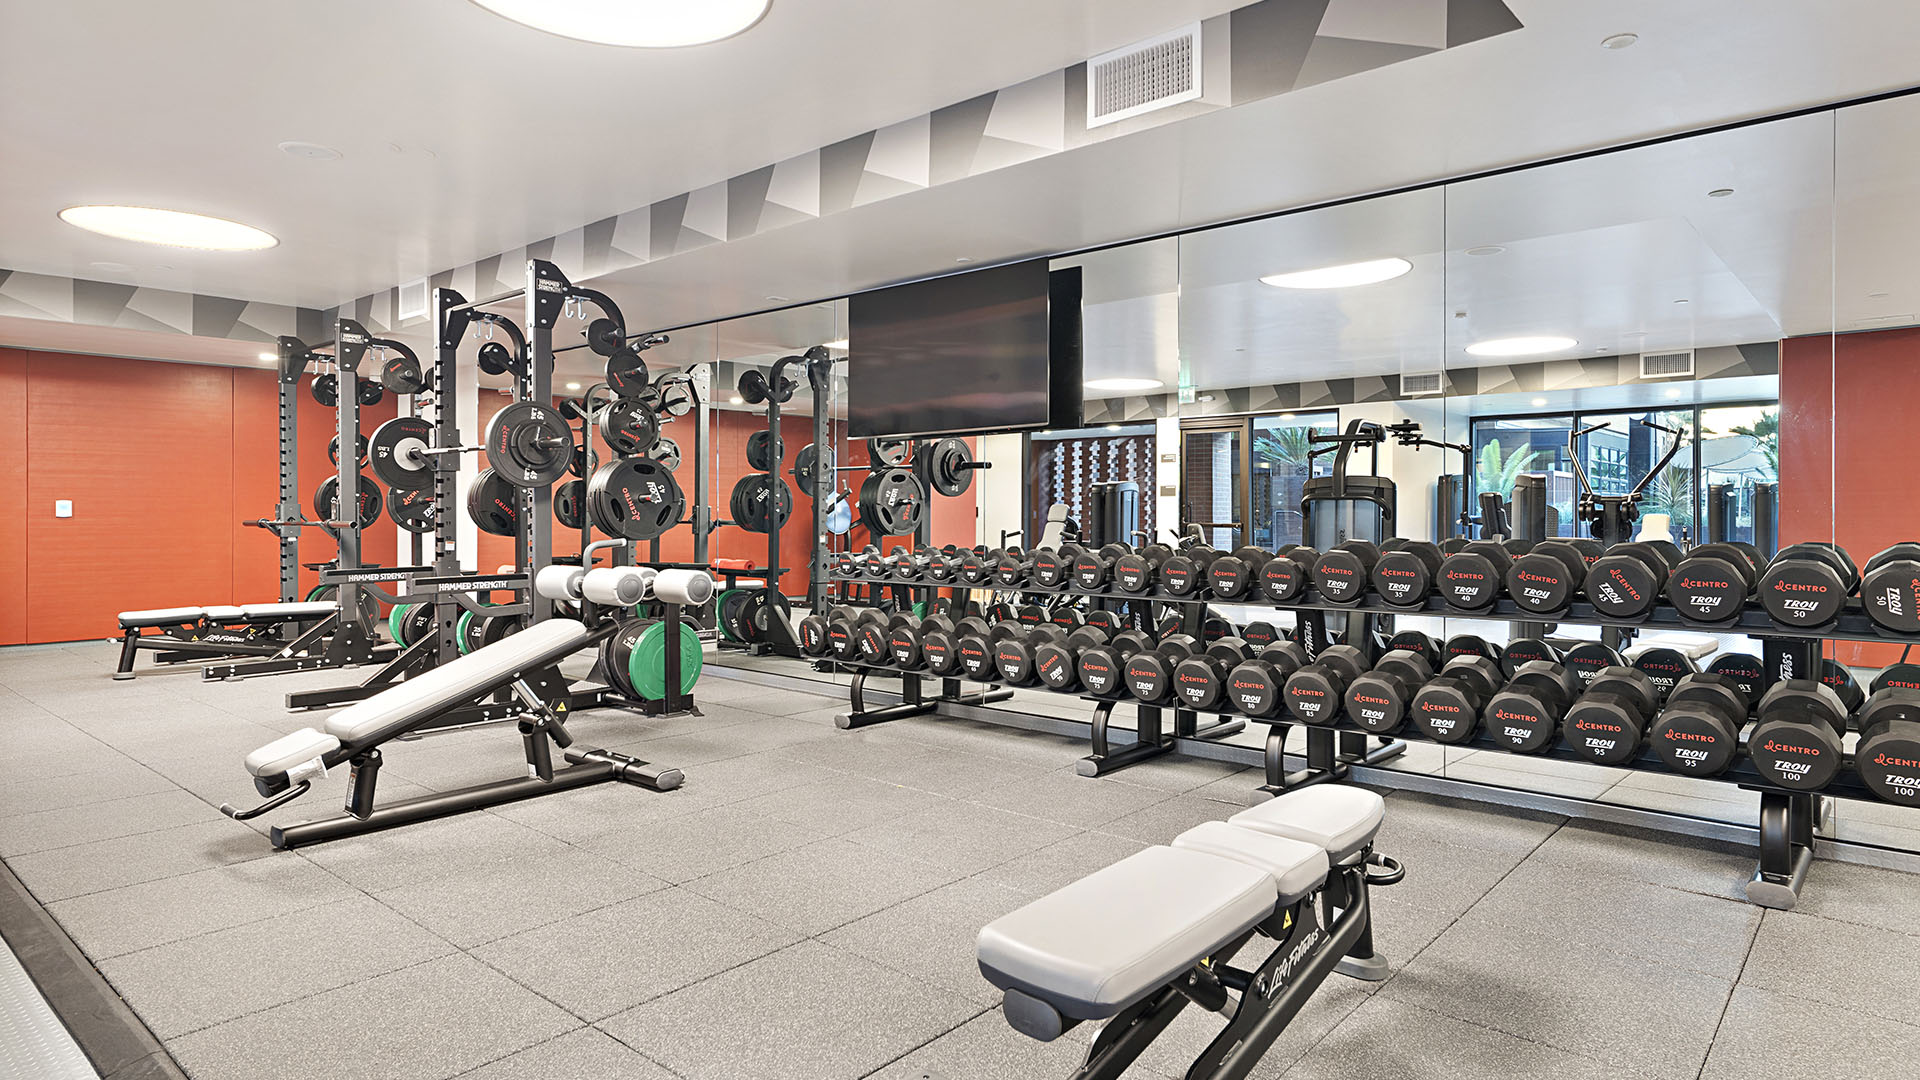 Fitness center with gym floor, mirror wall, benches, and large dumbbell rack.